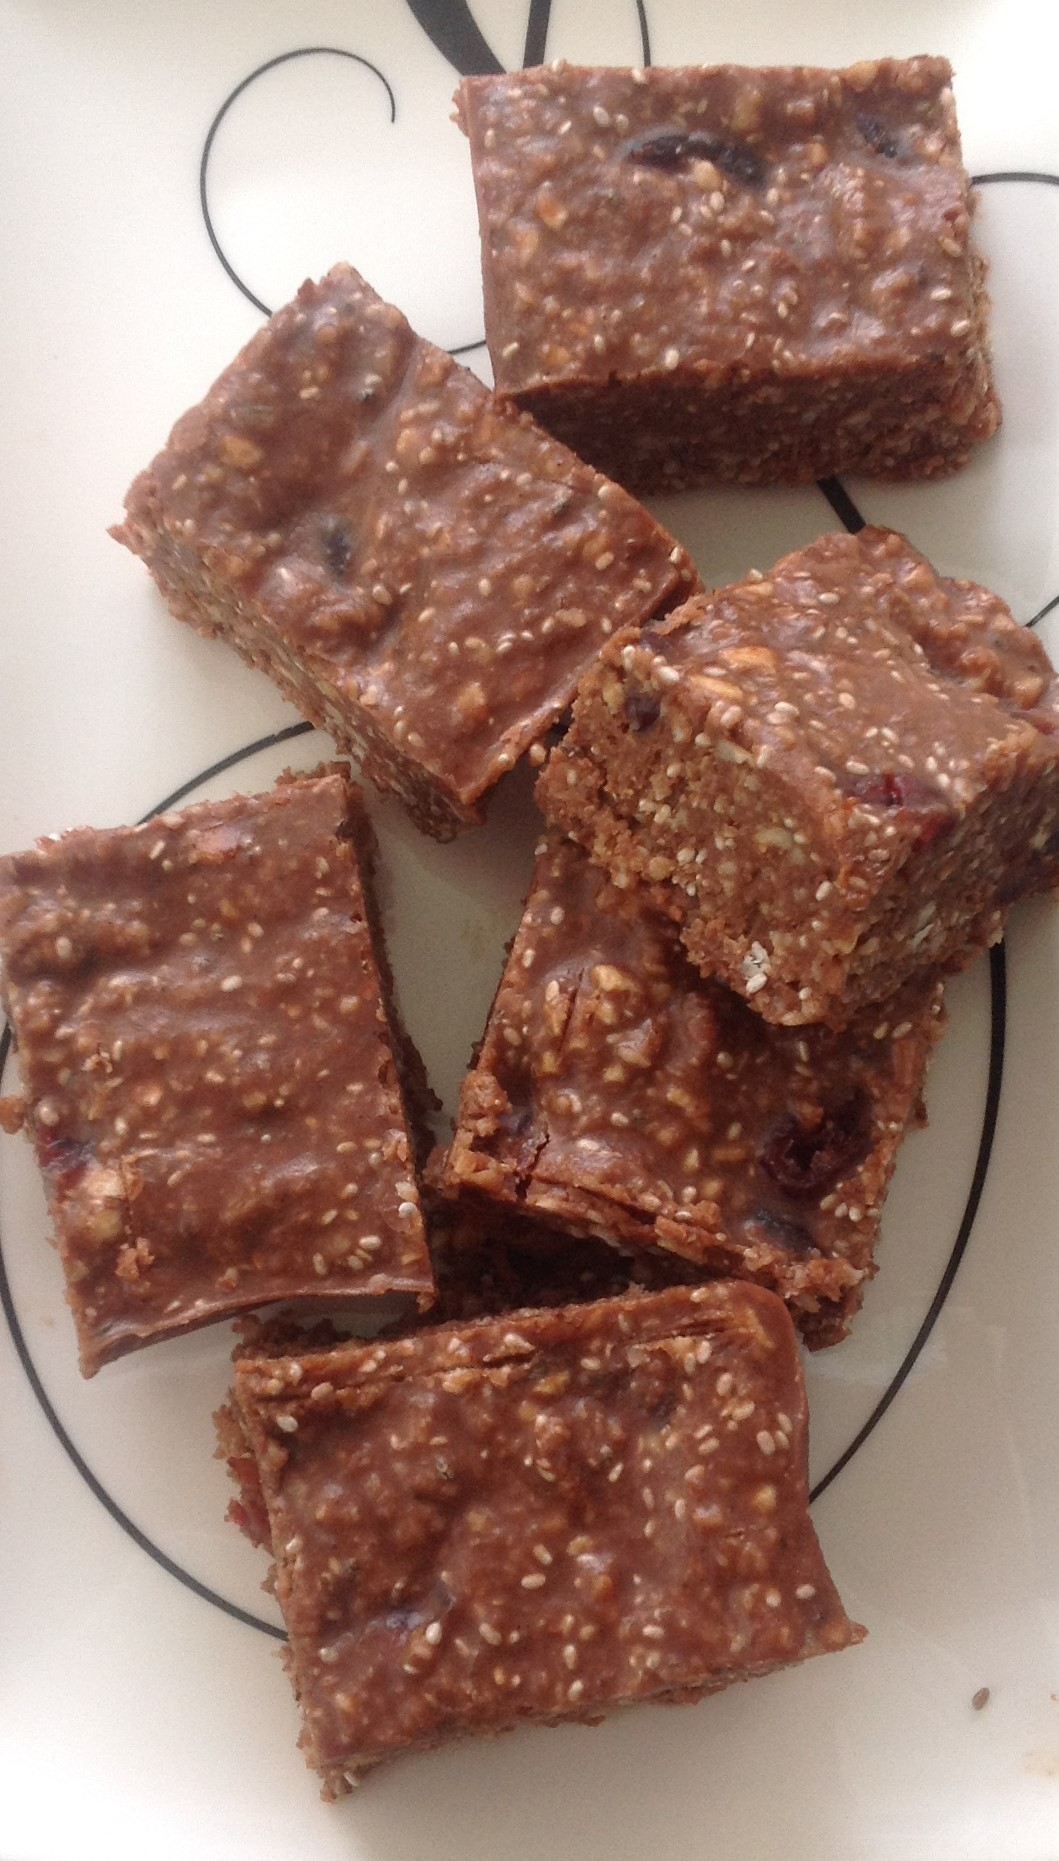 healthy chocolate slice Wakerley naturopath